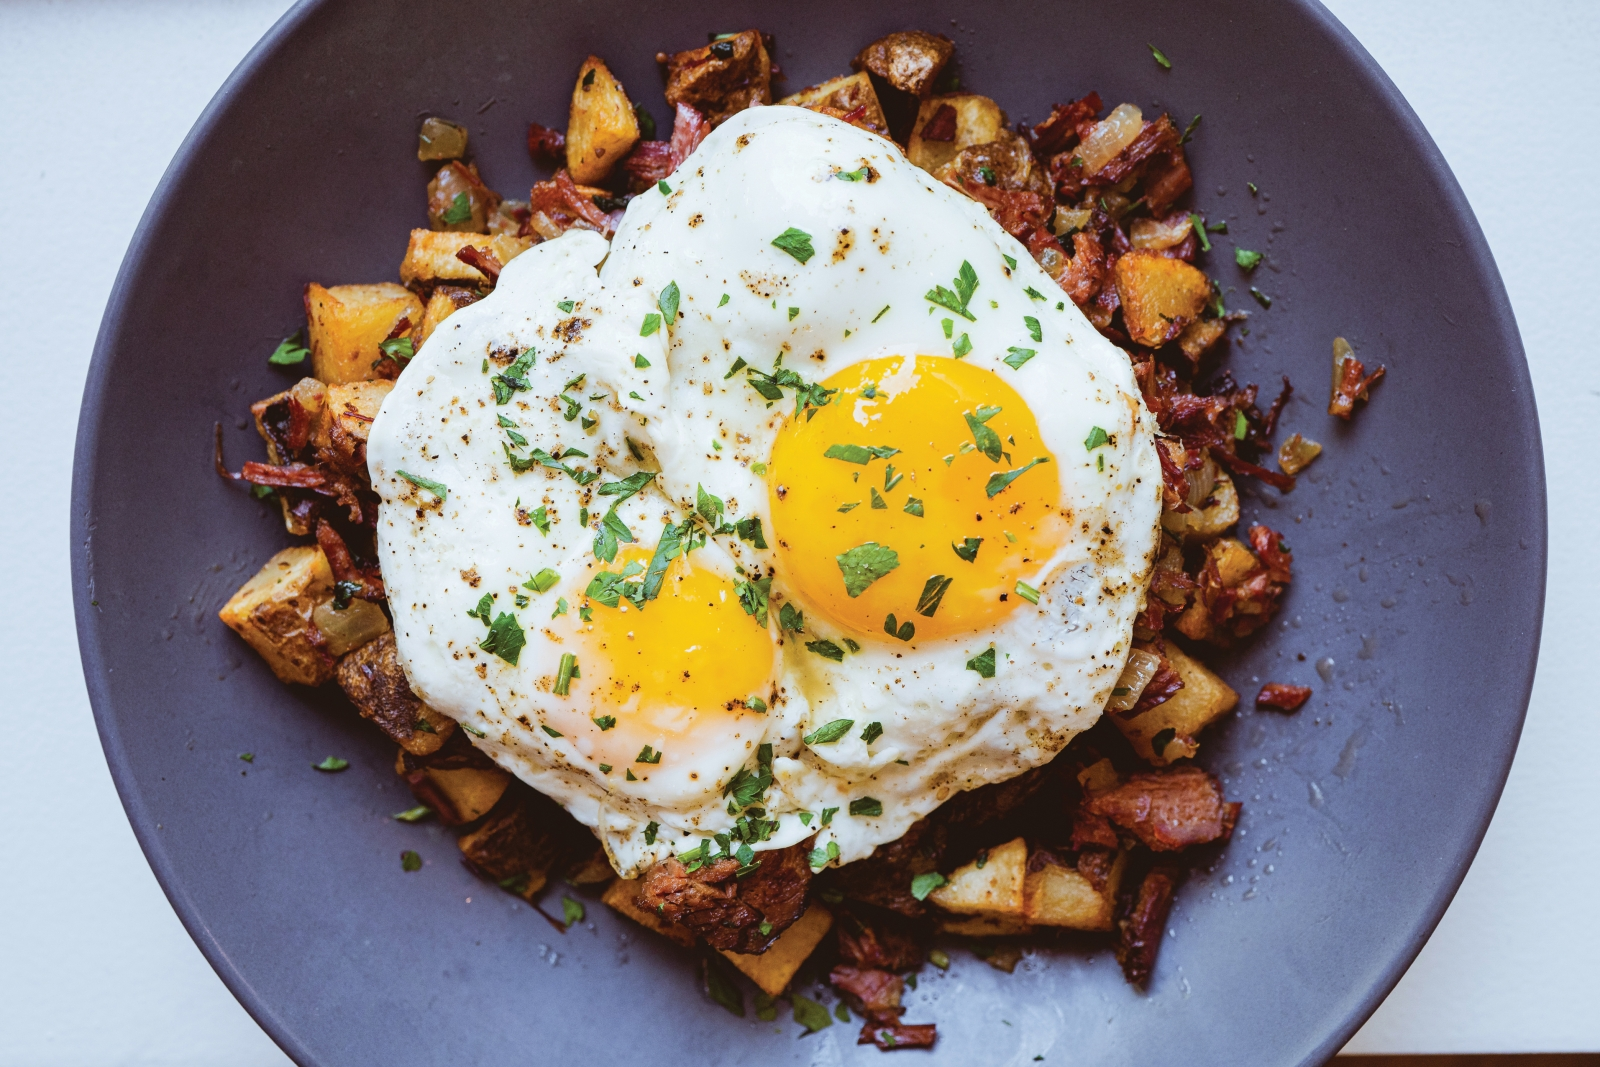 Like Solomon's other breakfast dishes, the pastrami and potato hash, topped with fried eggs, is served all day.